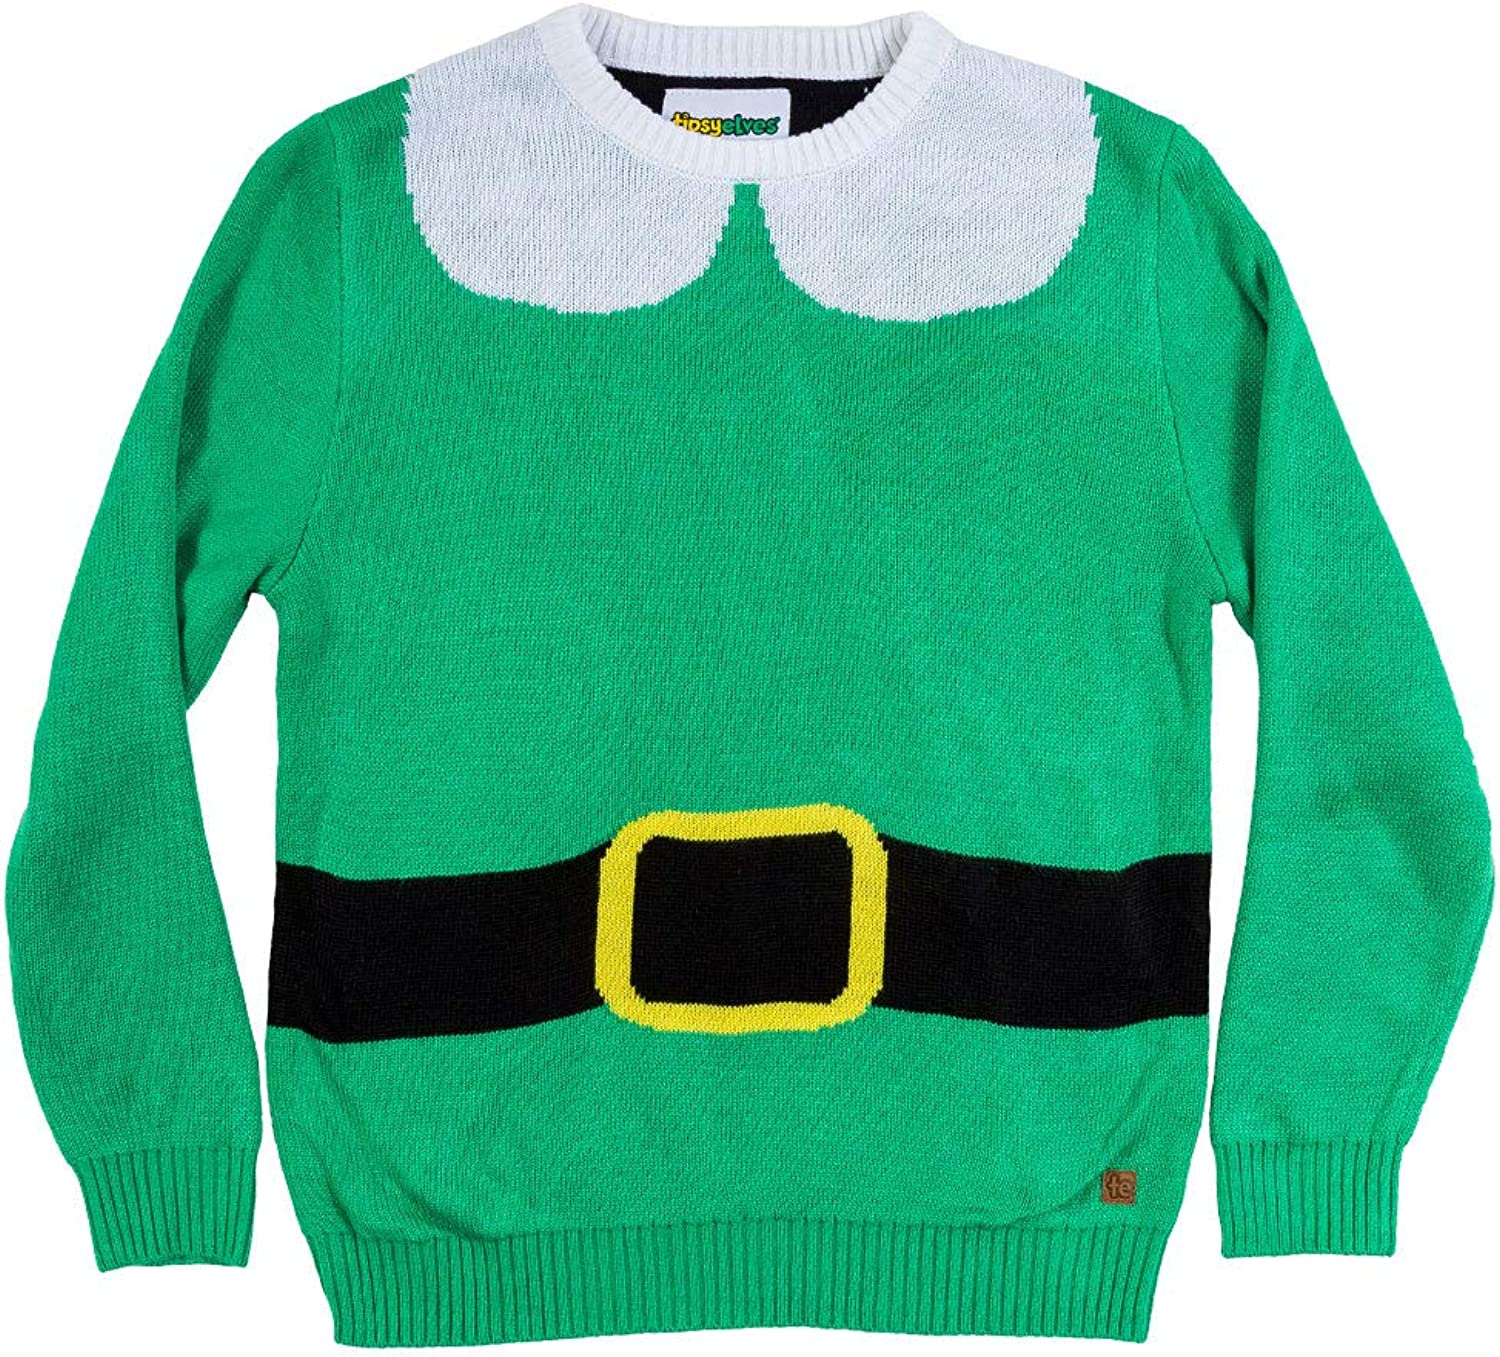 Tipsy Elves Ugly Christmas Sweaters for Children - Tacky Boys and Girls Kid's Holiday Pullovers